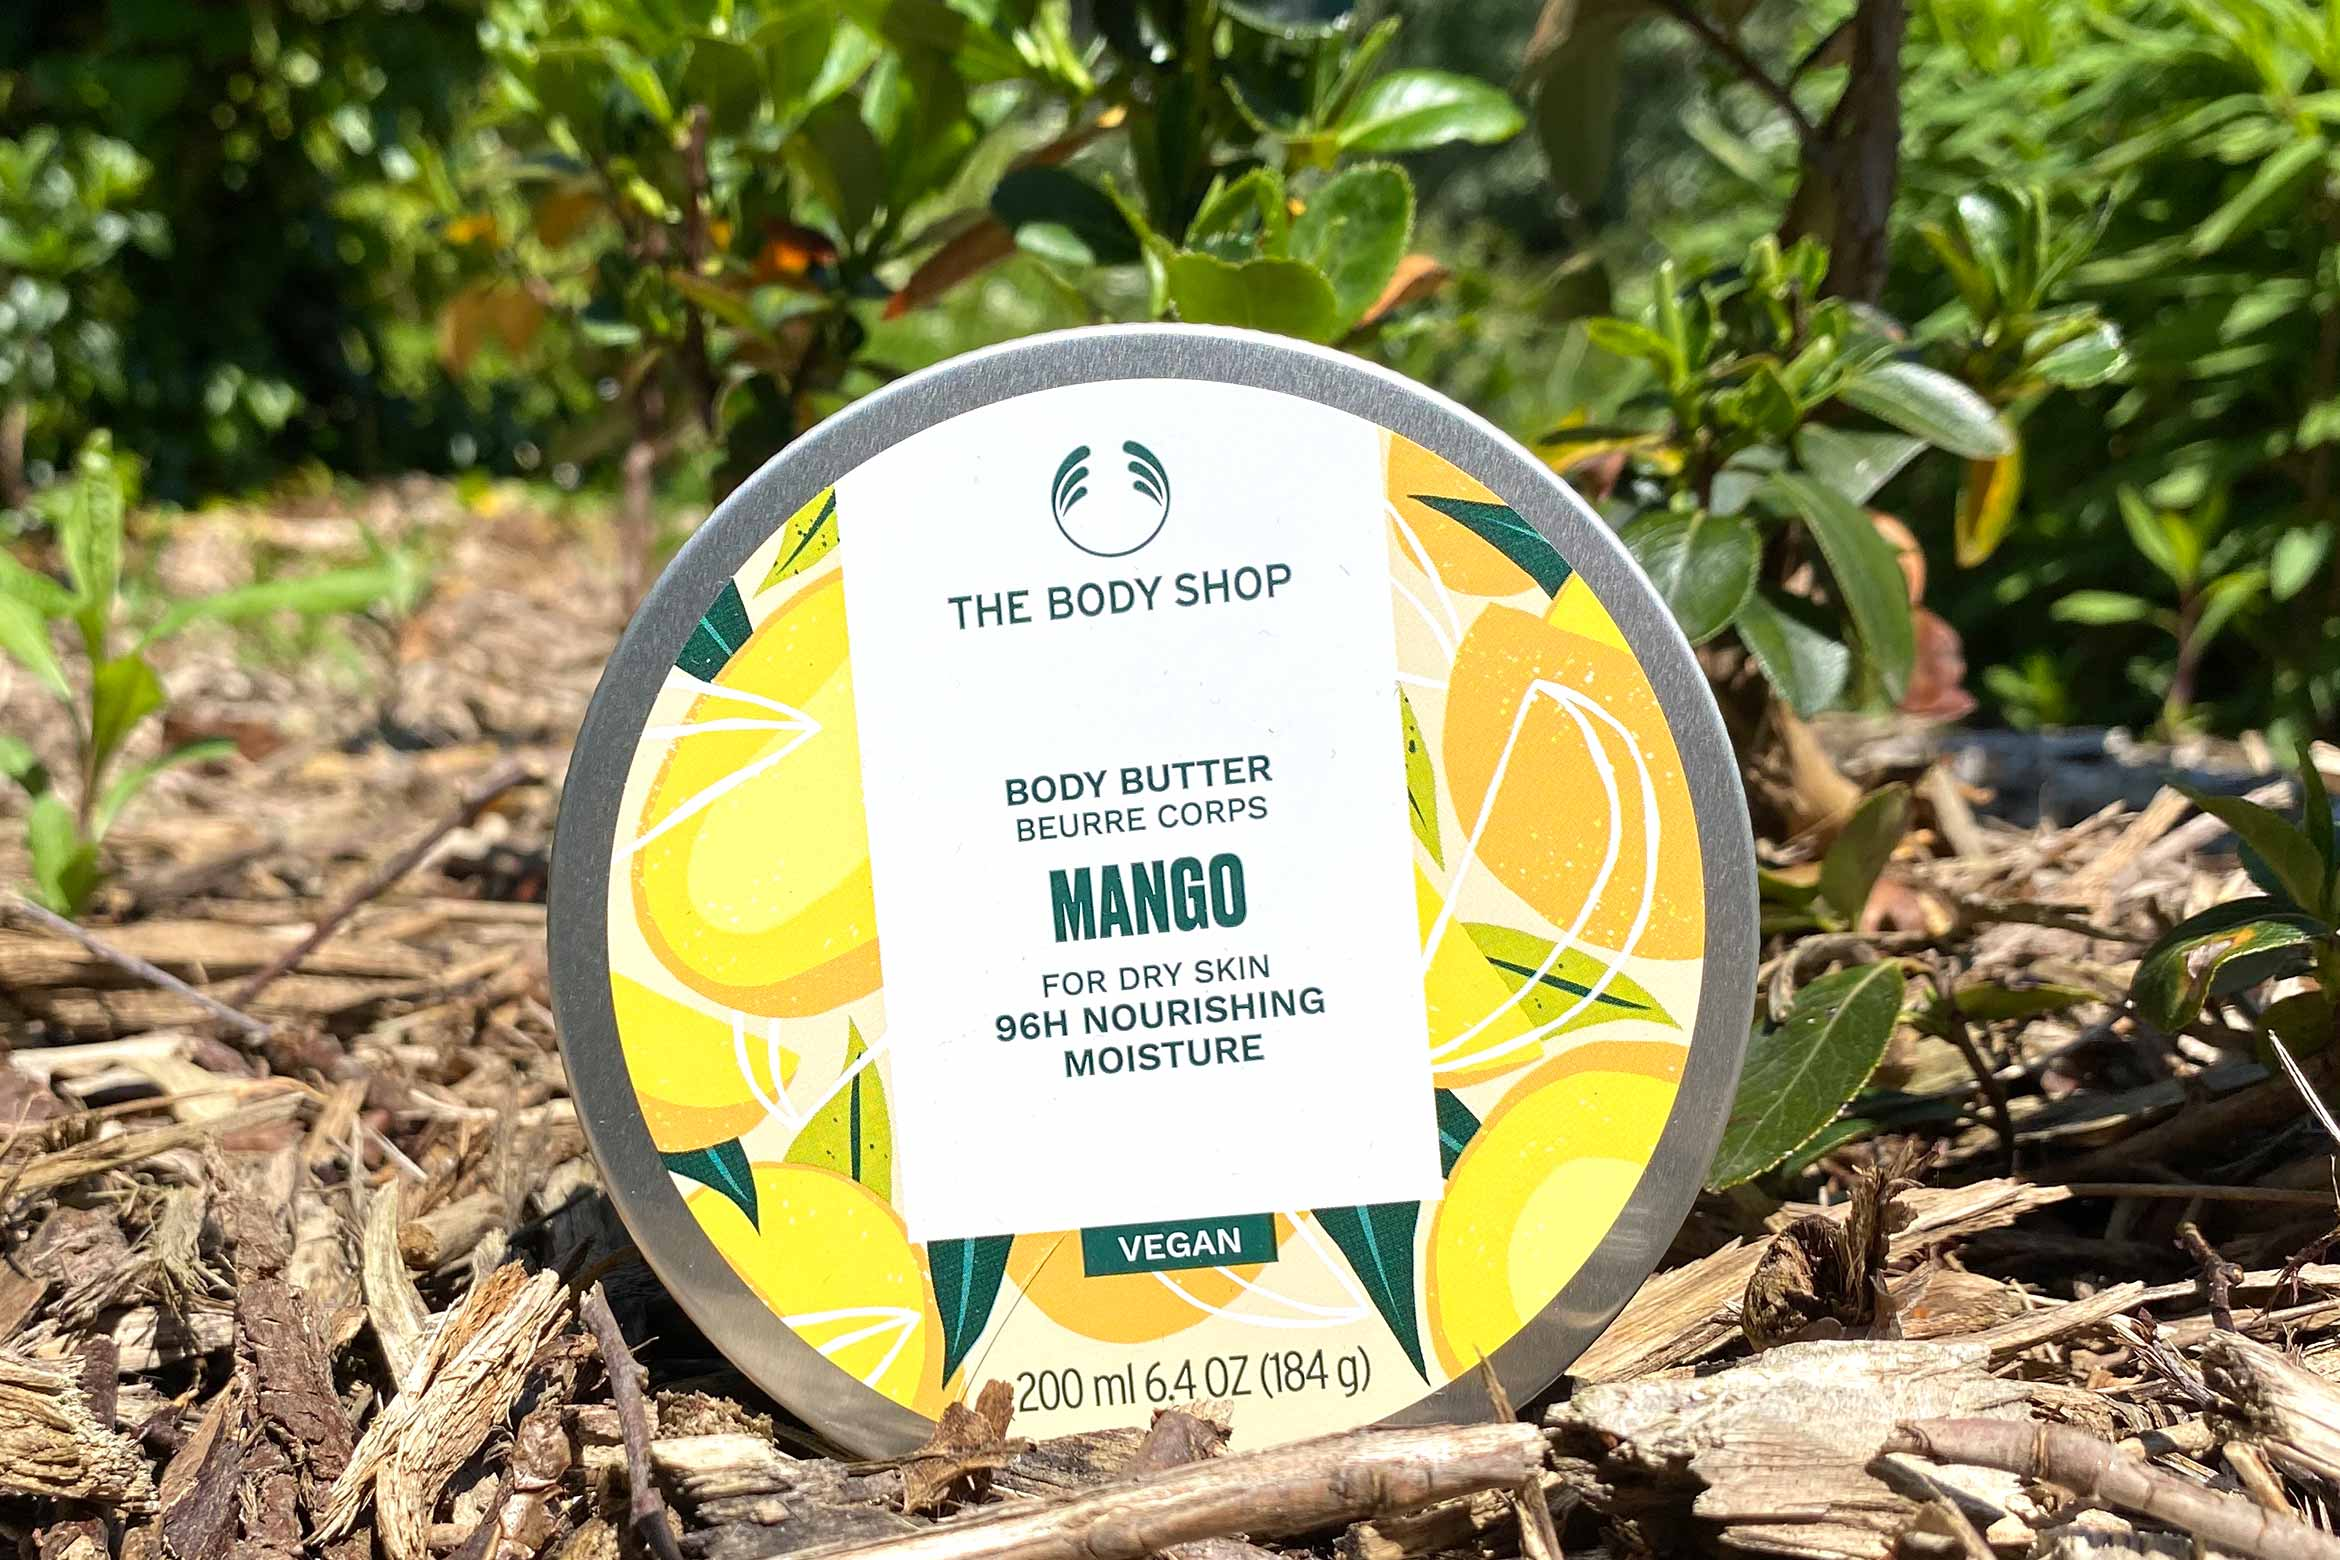 the body shop mango body butter review the vegan society